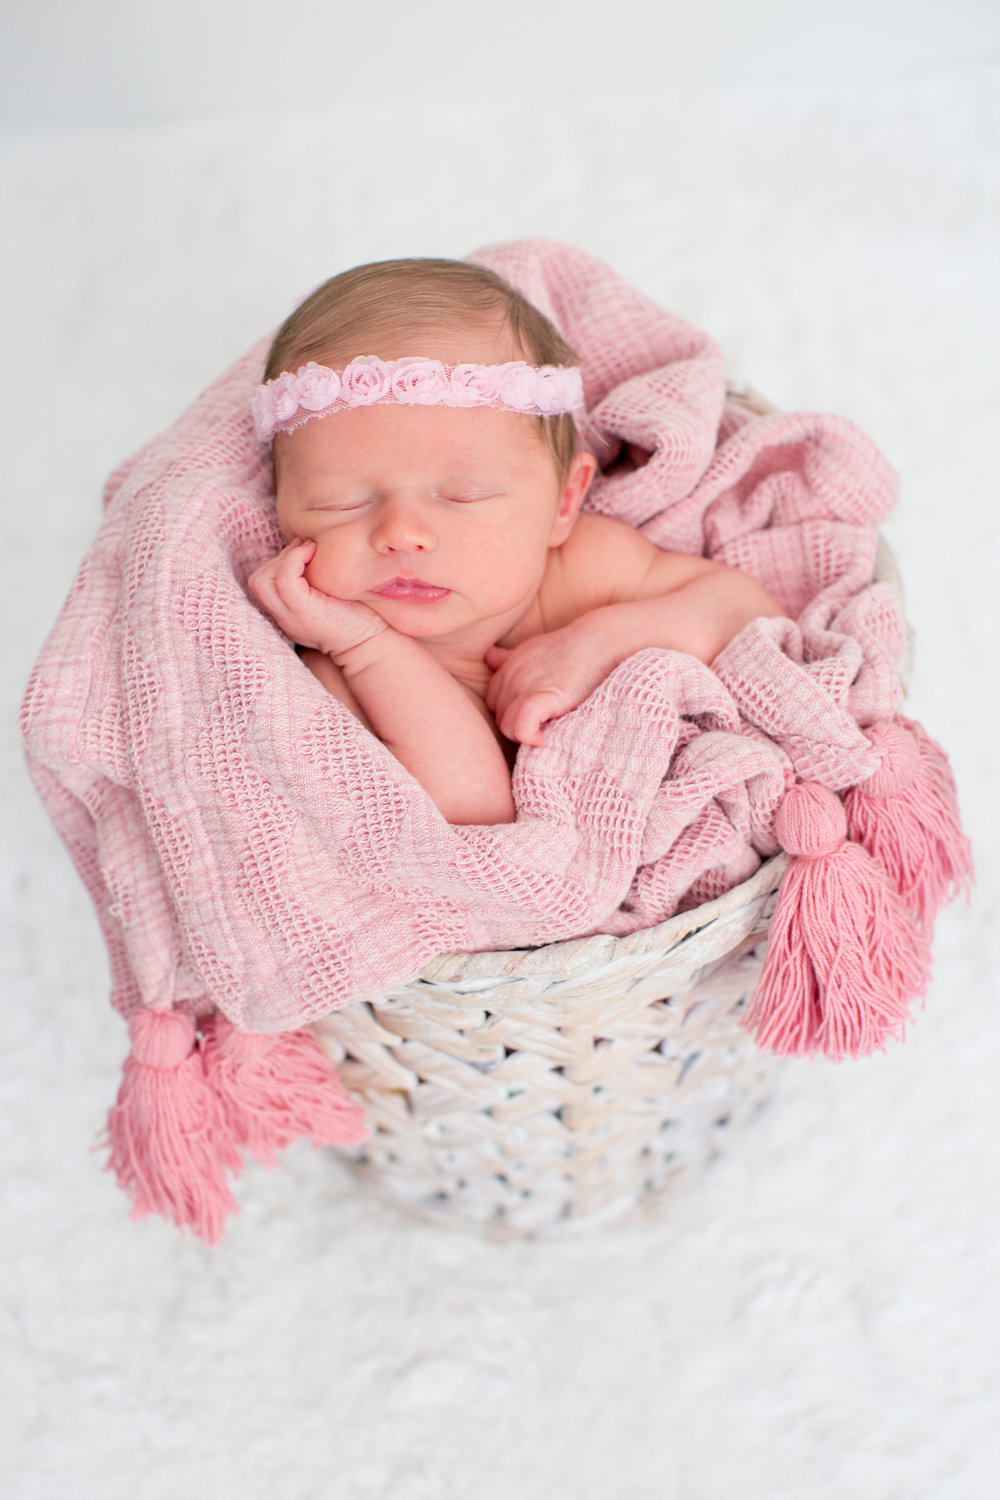 Highland_Park_Illinois_Newborn_Photographer_2.jpg